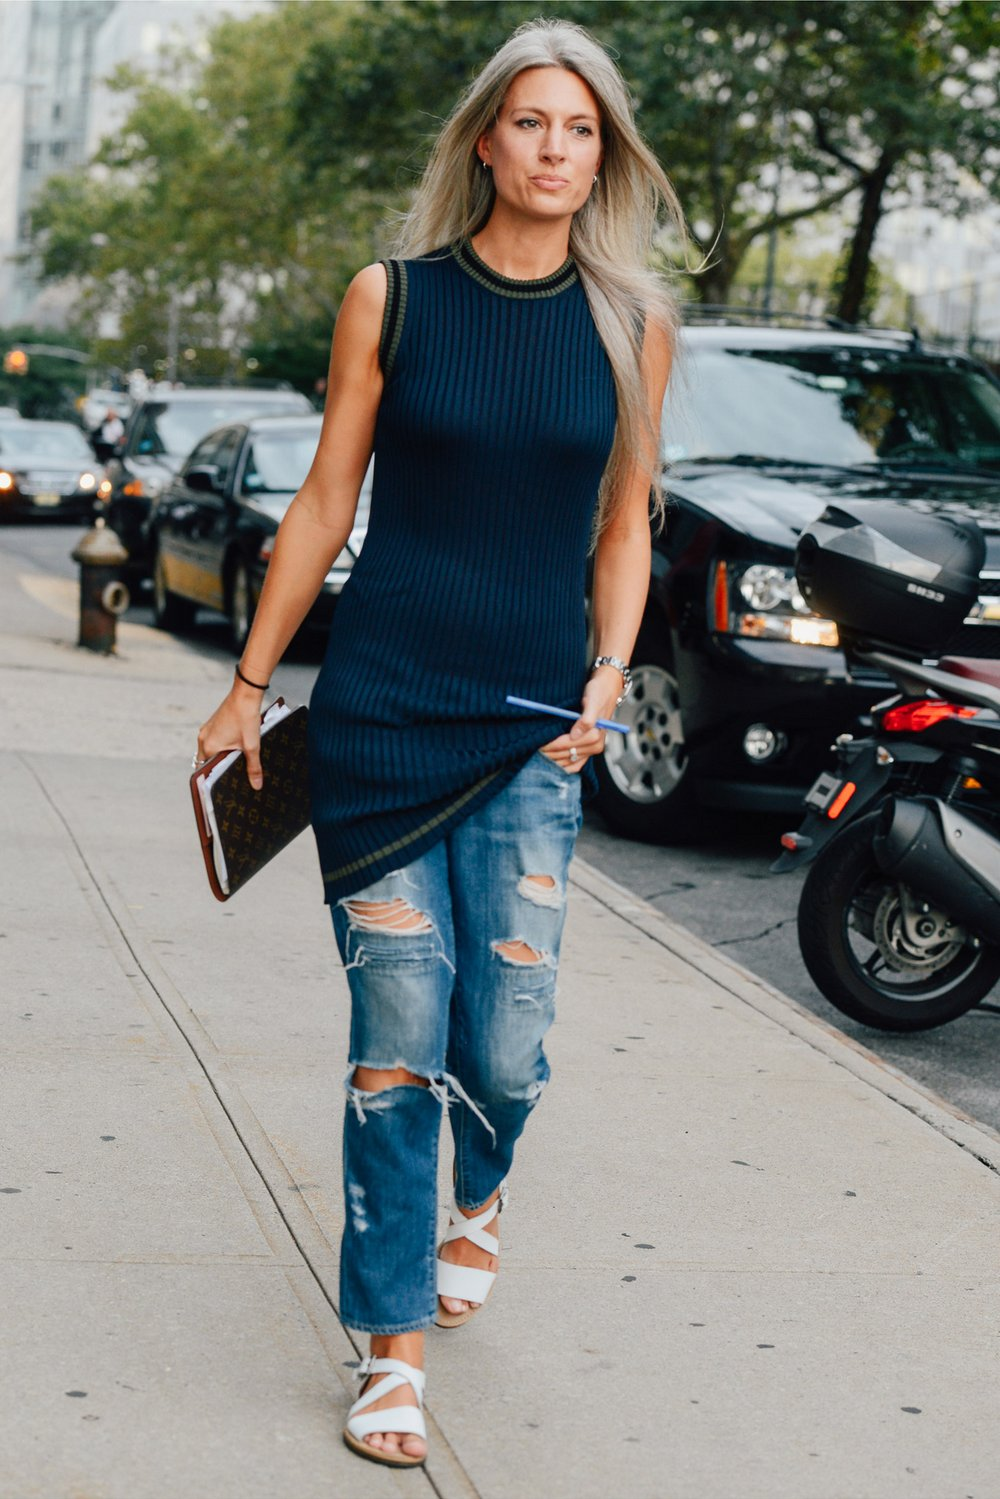 studded-hearts-NYFW-Spring-Summer-2015-shows-streetstyle-27.jpg